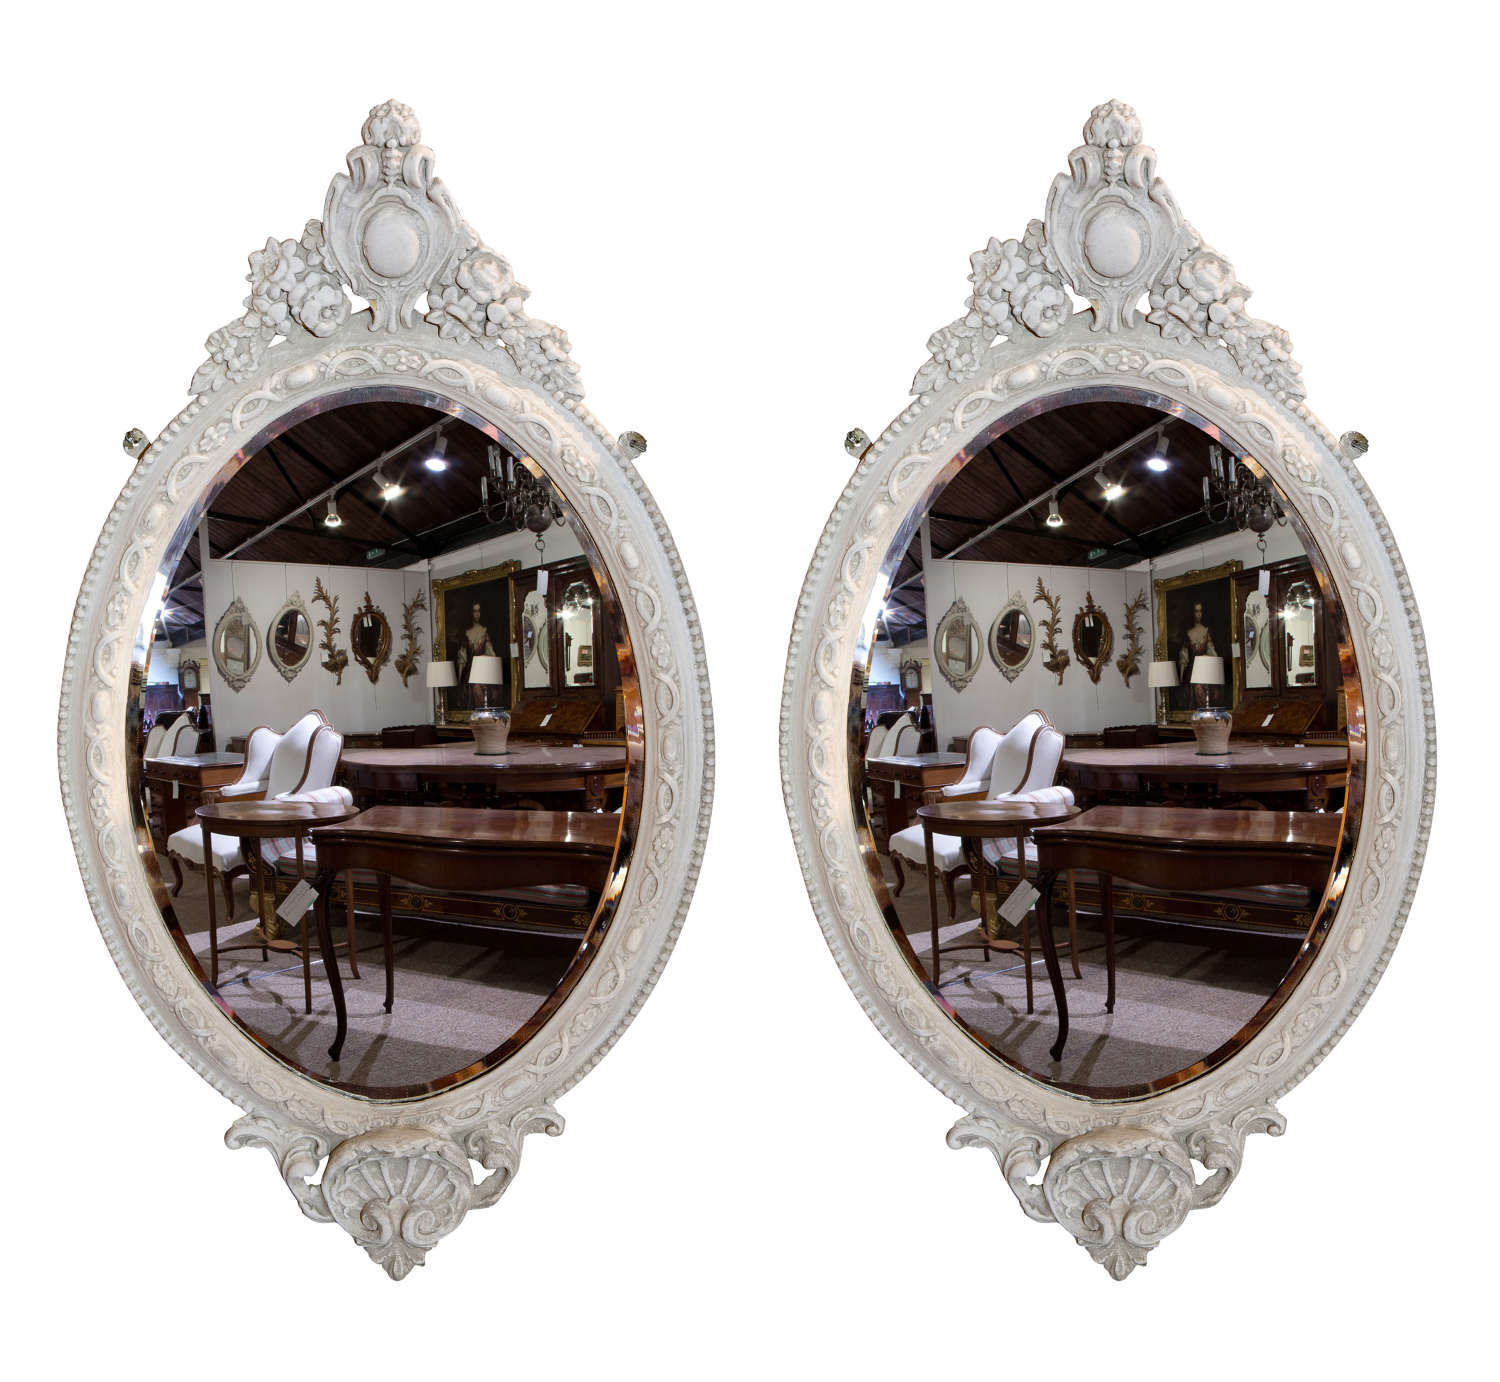 Pair of 19thc Oval Wall Mirrors